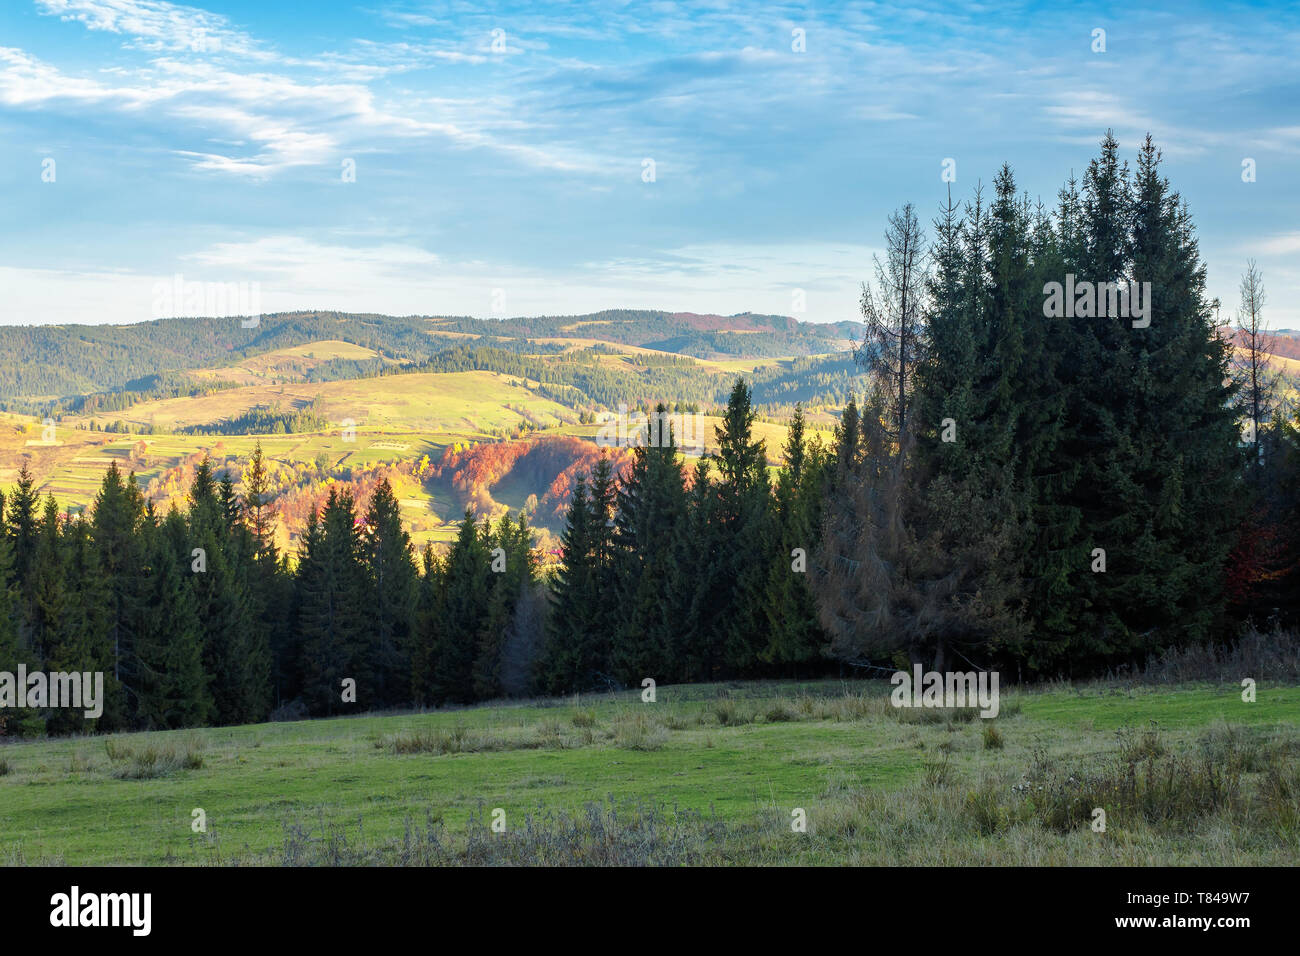 autumn countryside landscape in mountains. rural fields on the distant hills in evening light. cloudscape on a blue sky above the distant ridge. spruc - Stock Image